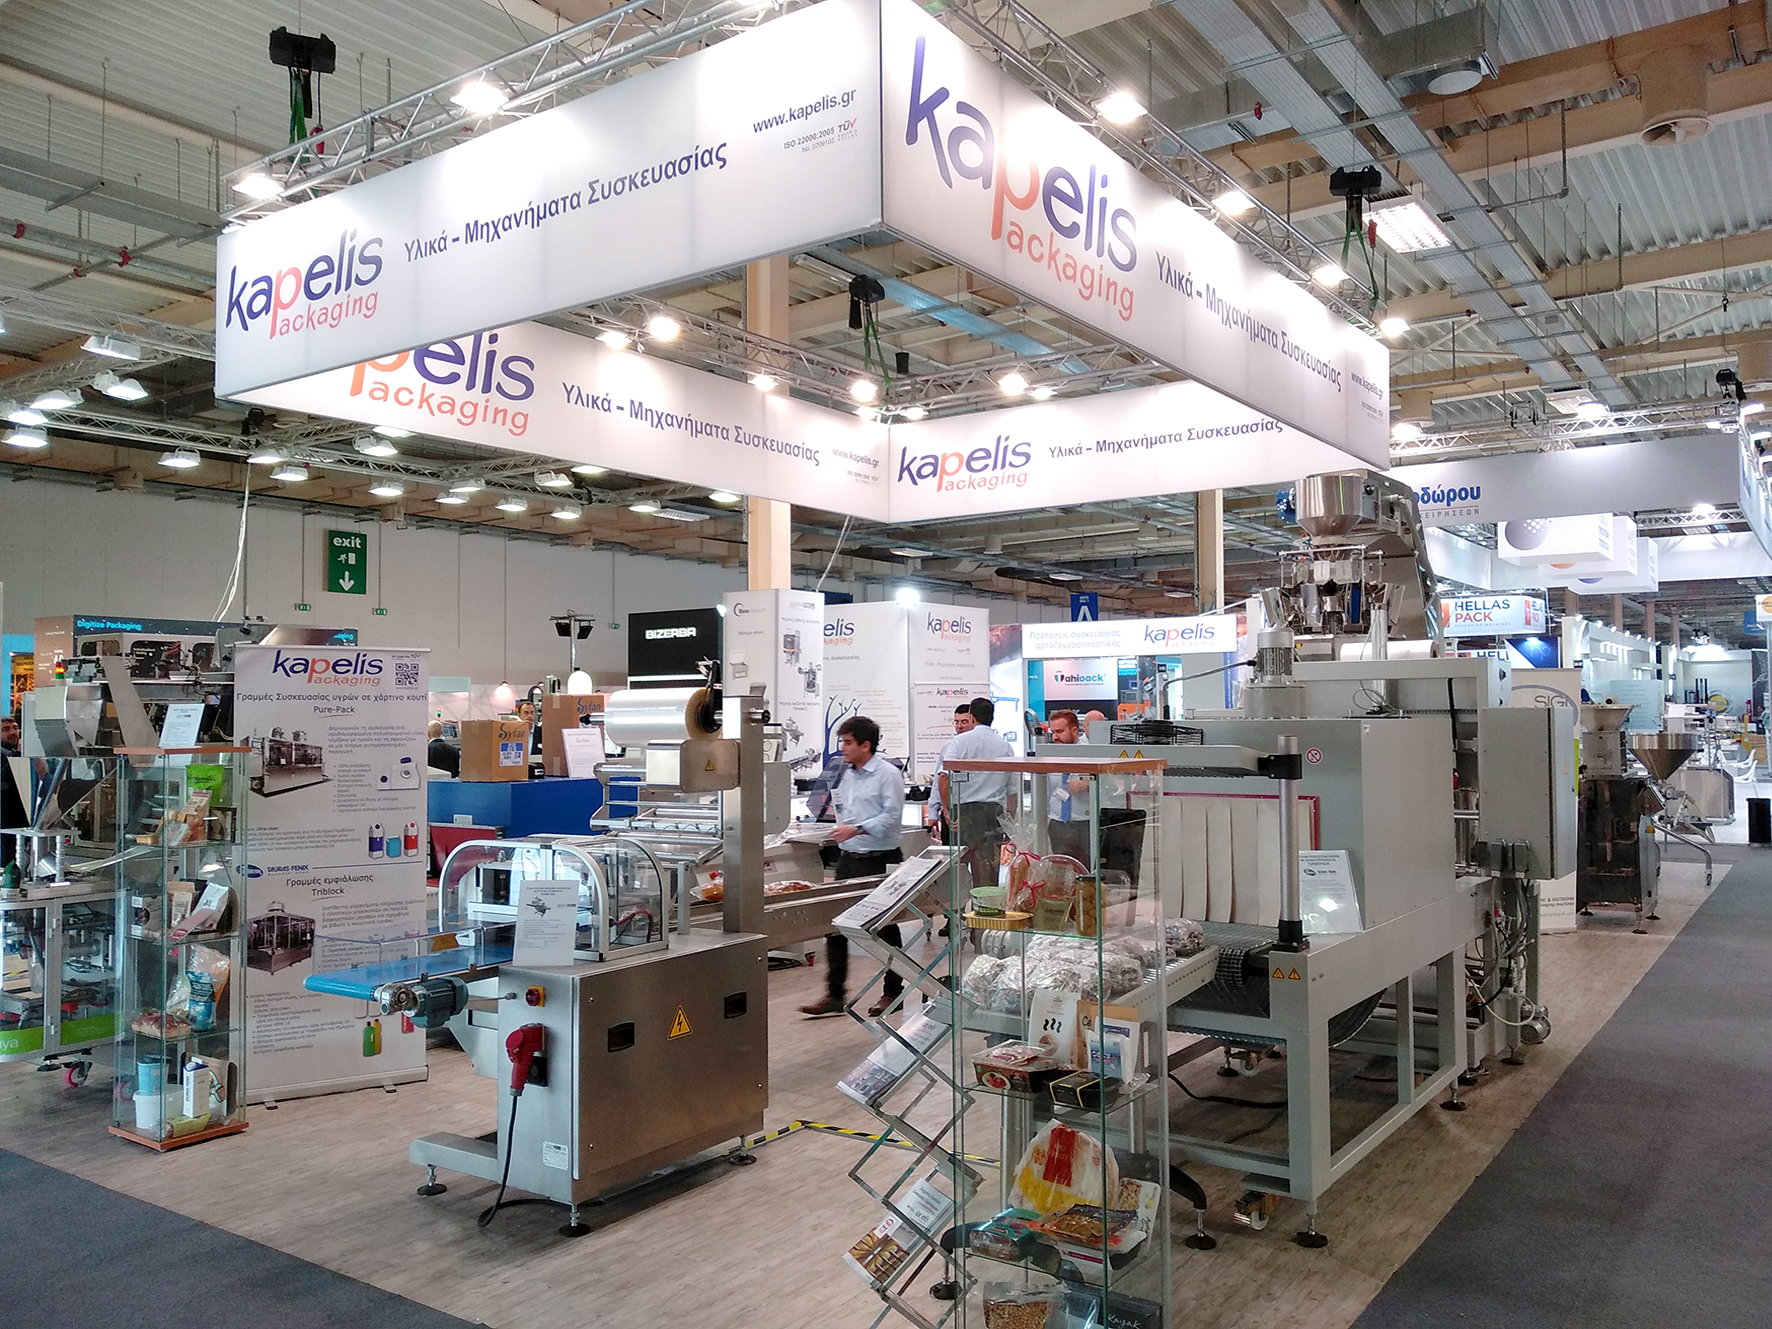 Kapelis Packaging exhibited some Sirane products at Syskevasia 2018